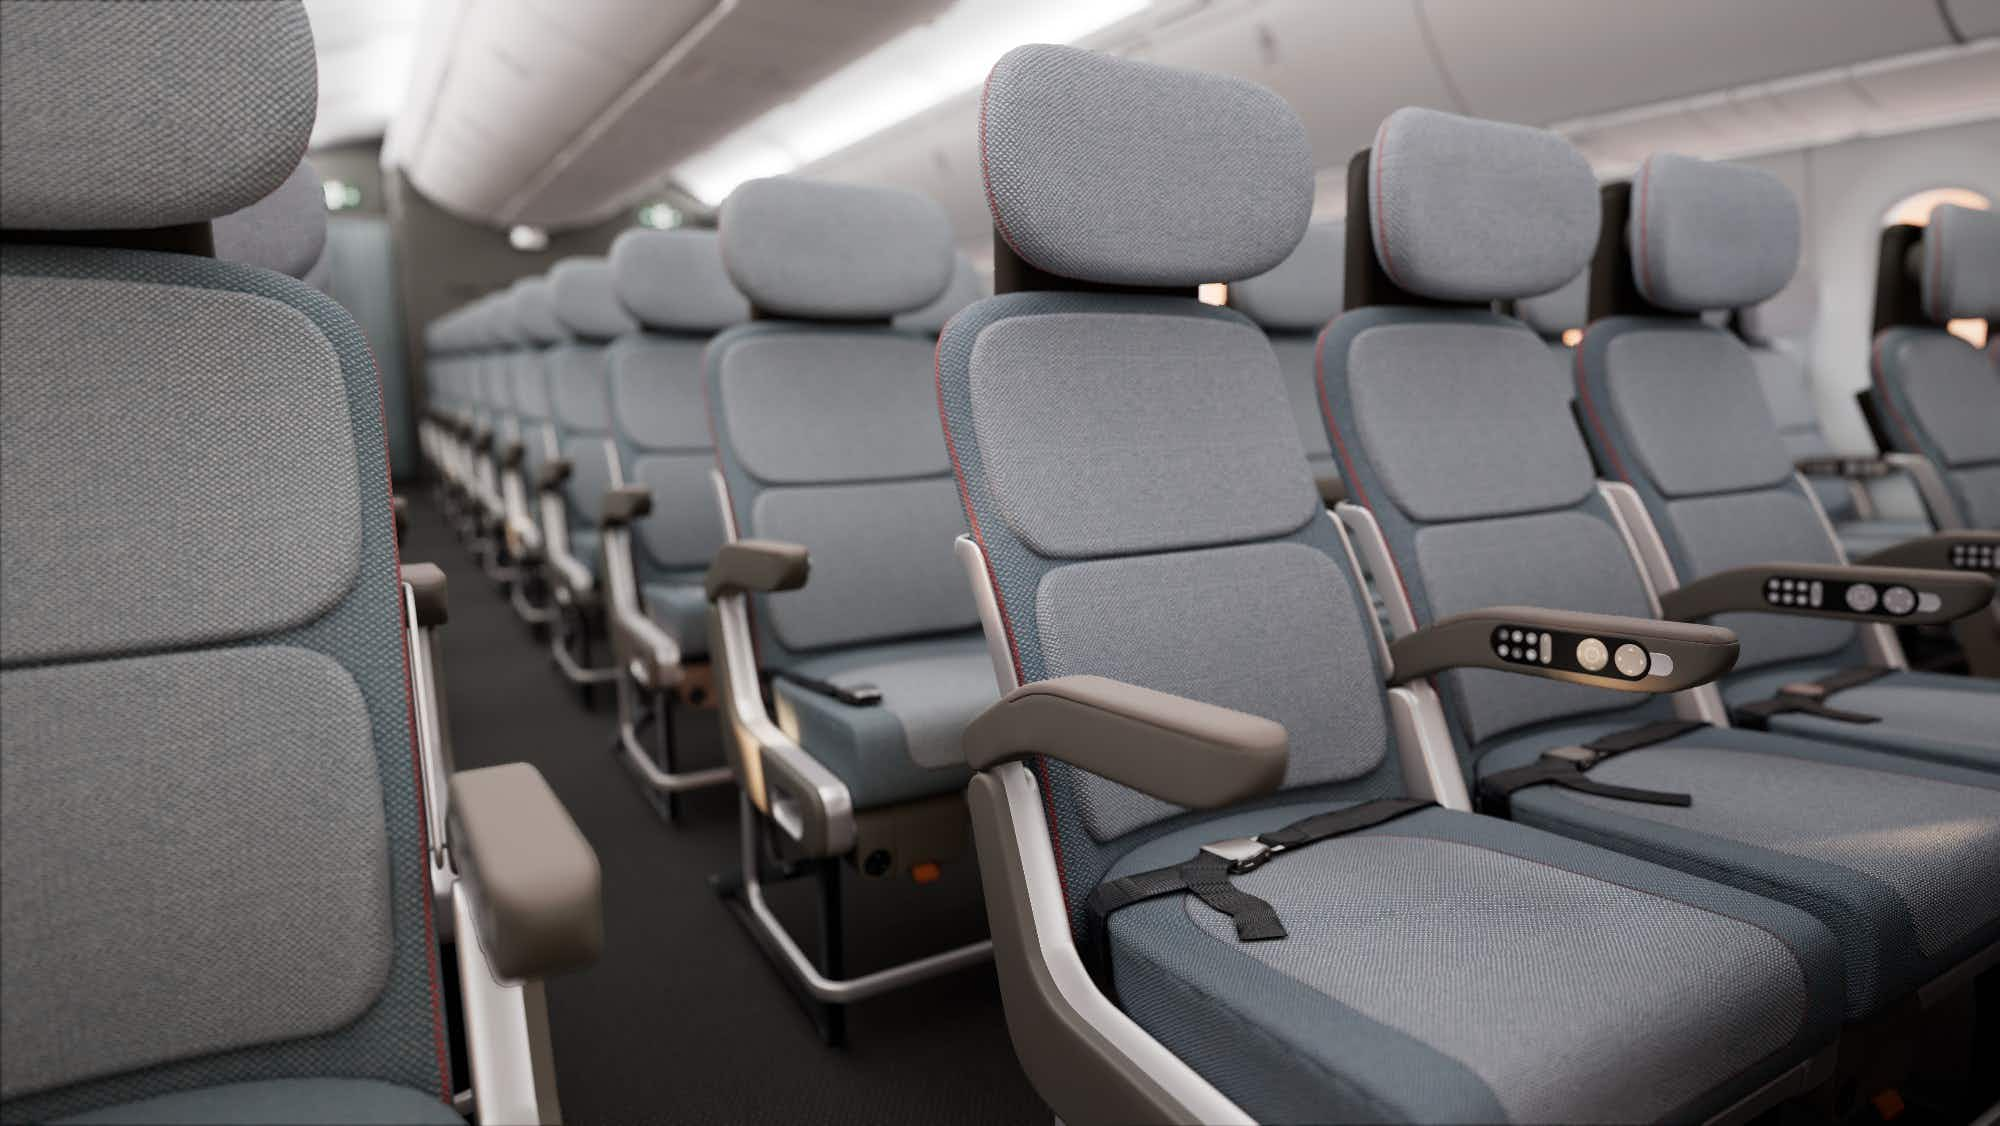 This airline seat could be what tall people have been waiting for